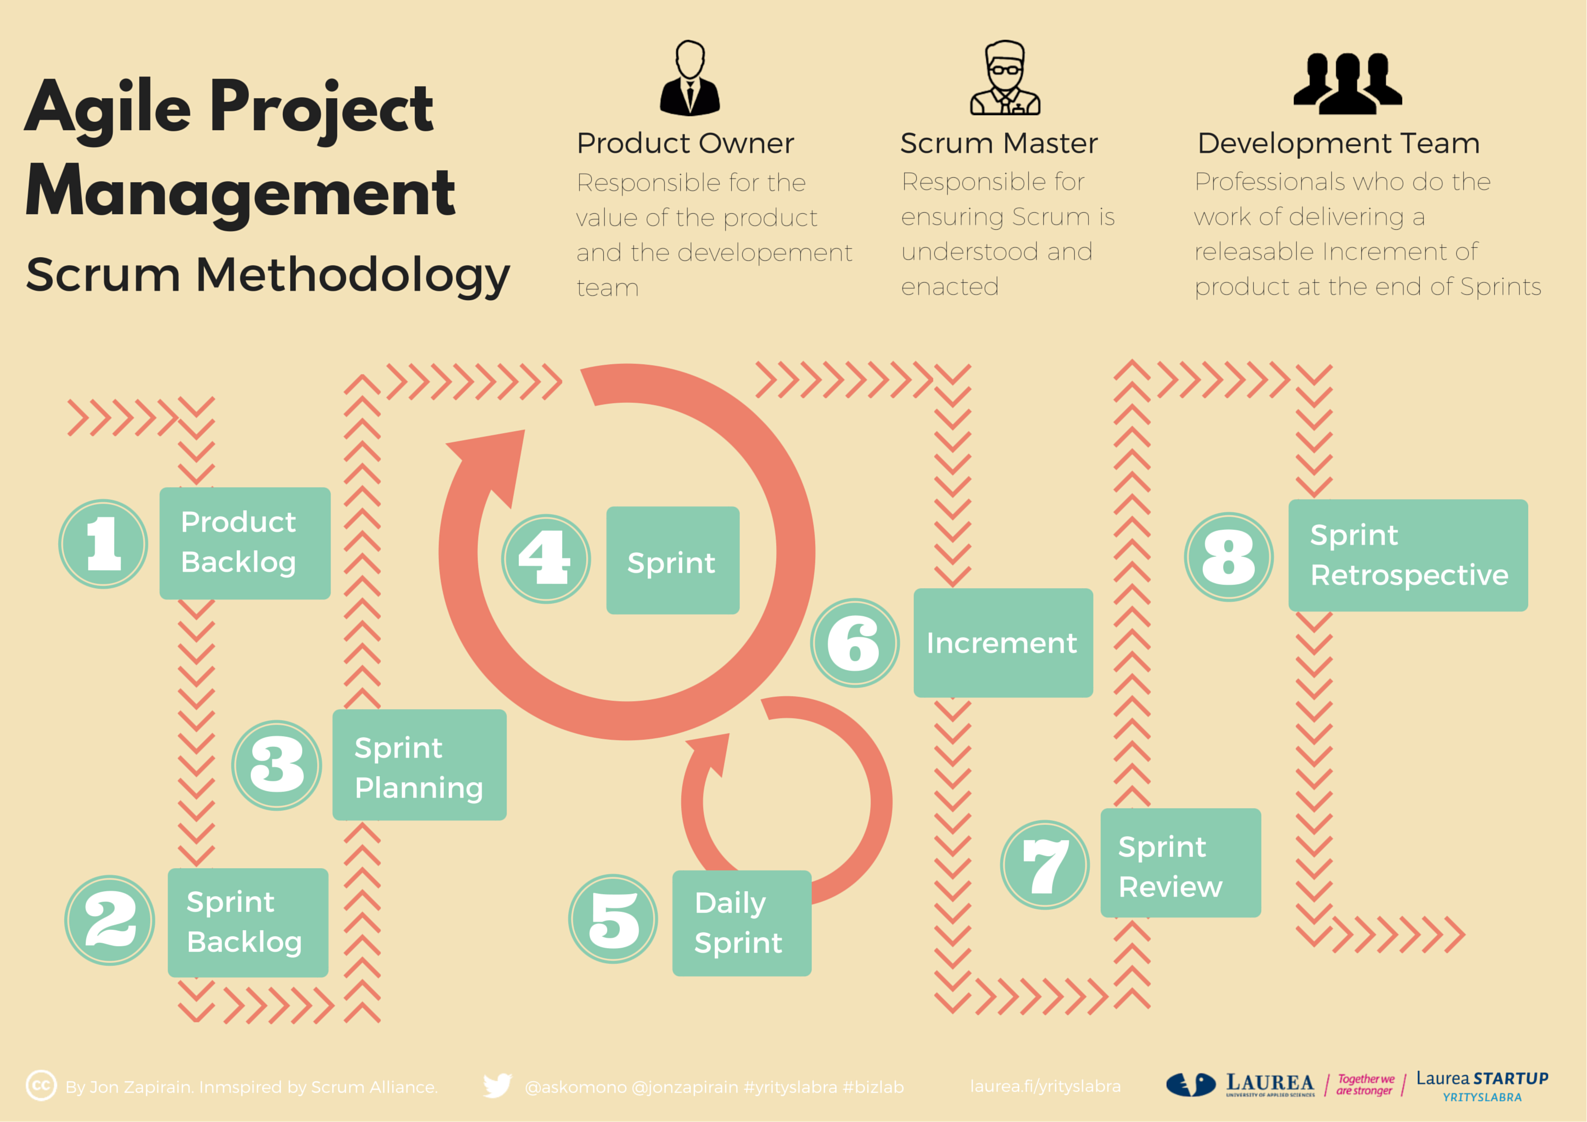 Agile Project Management Scrum Methodology (infographic